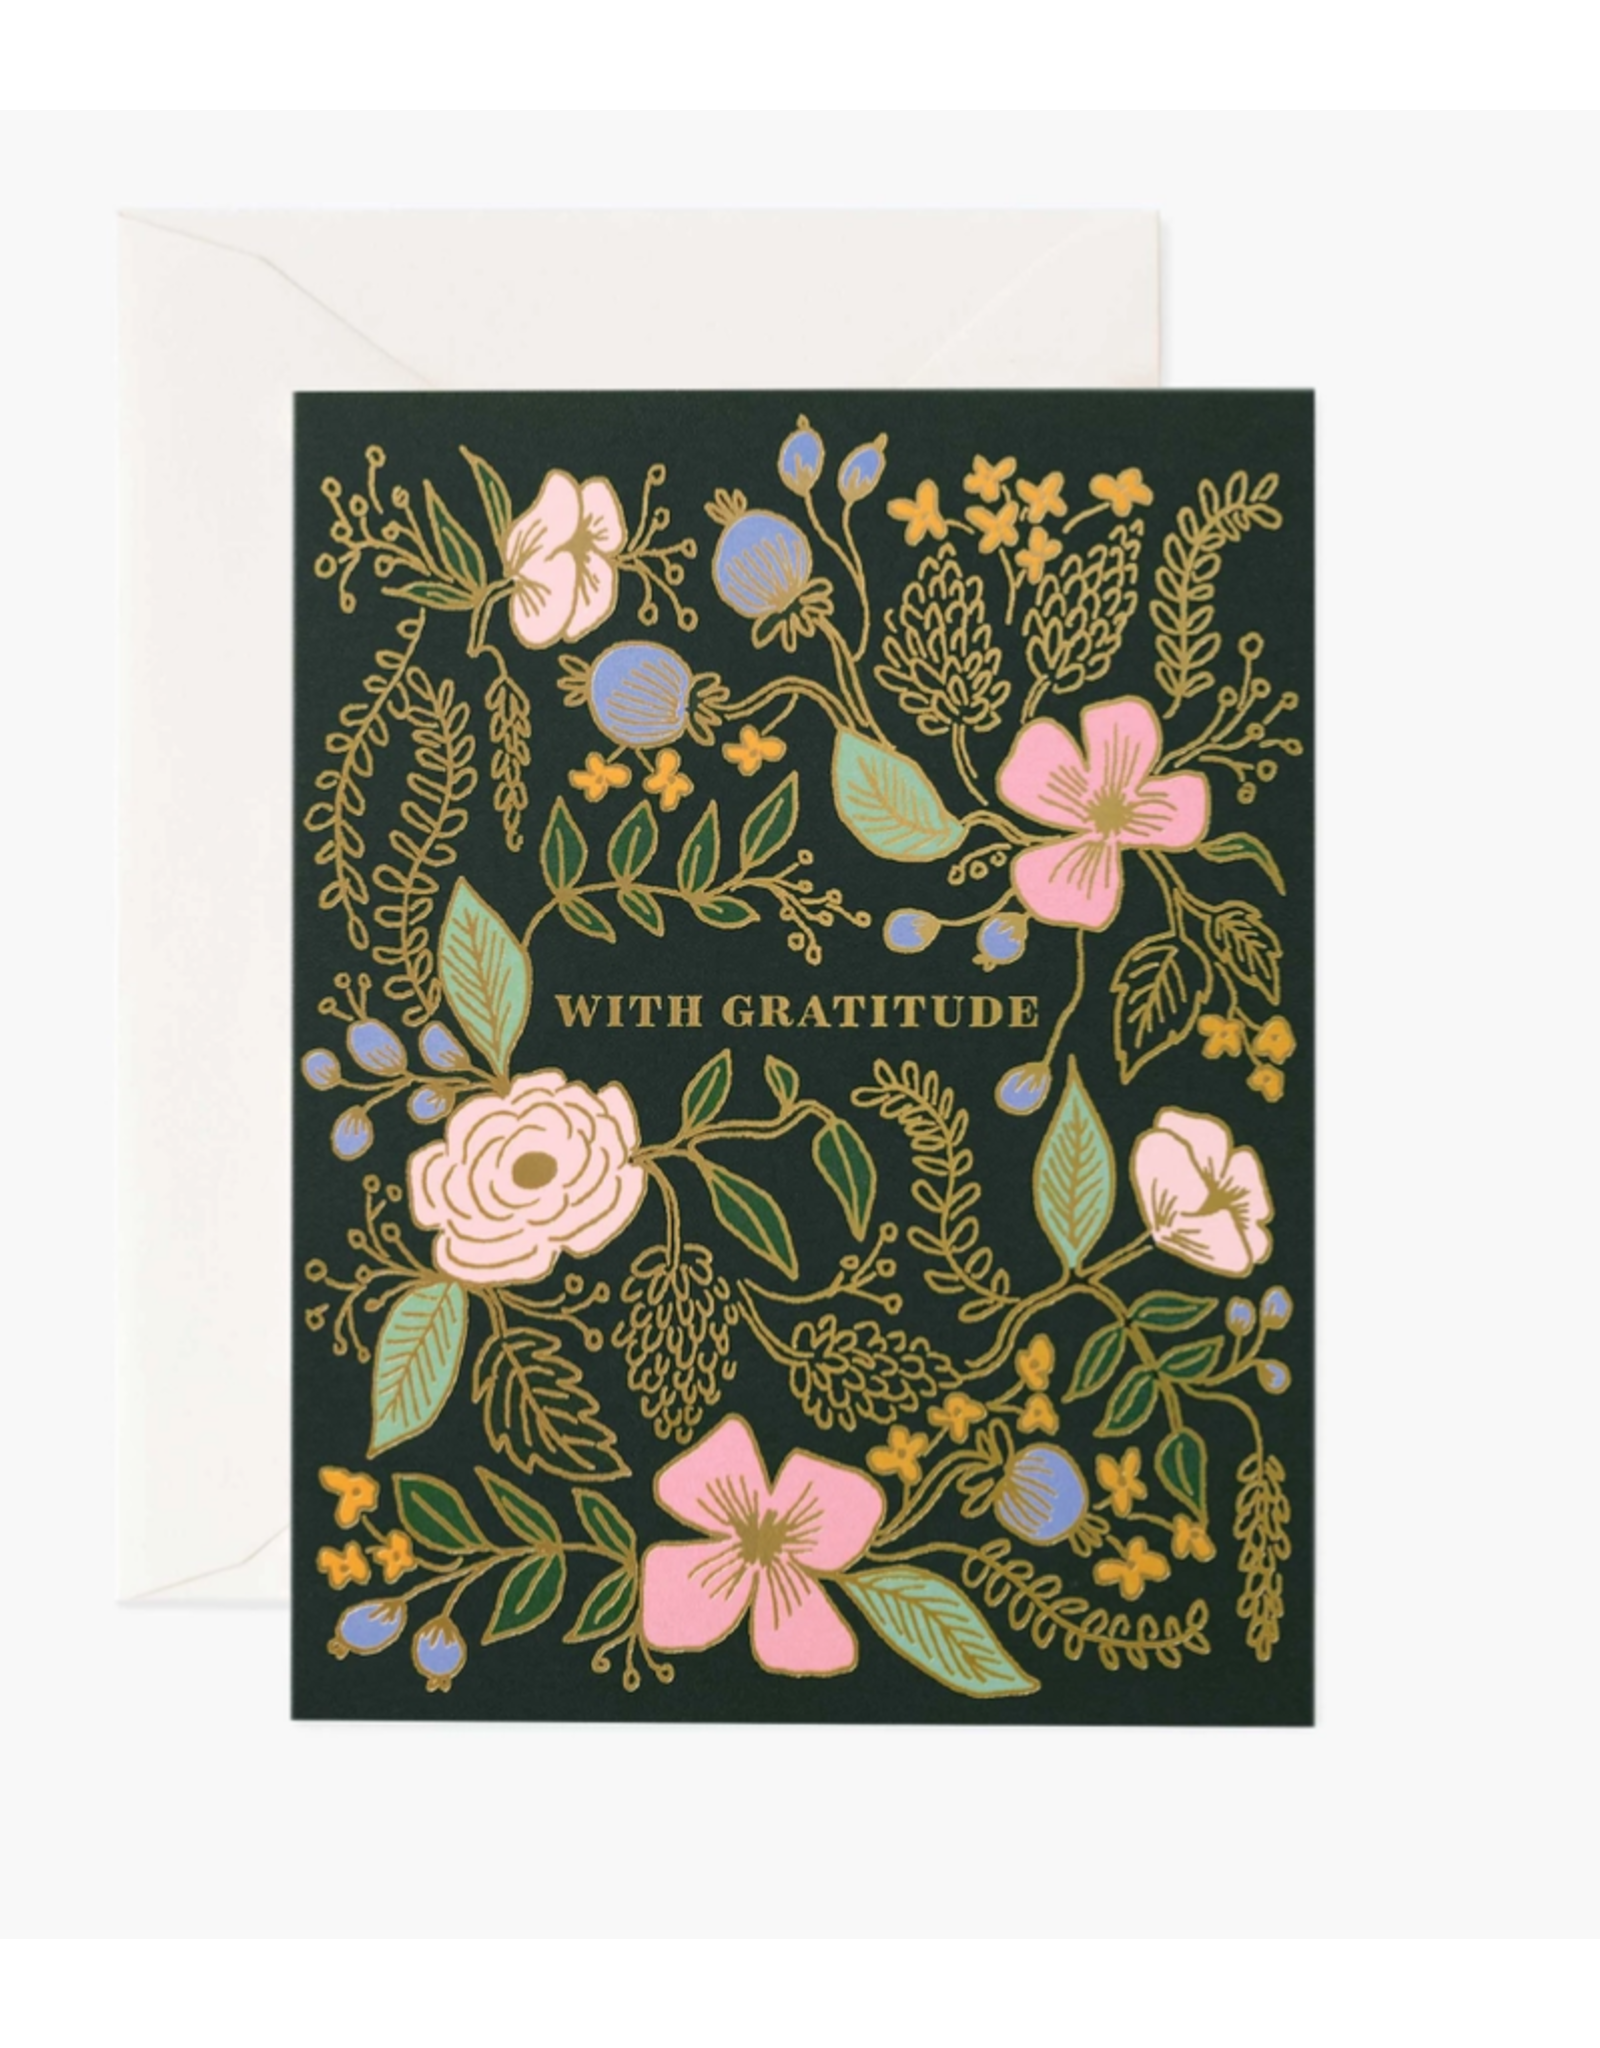 Boxed Set of With Gratitude Cards